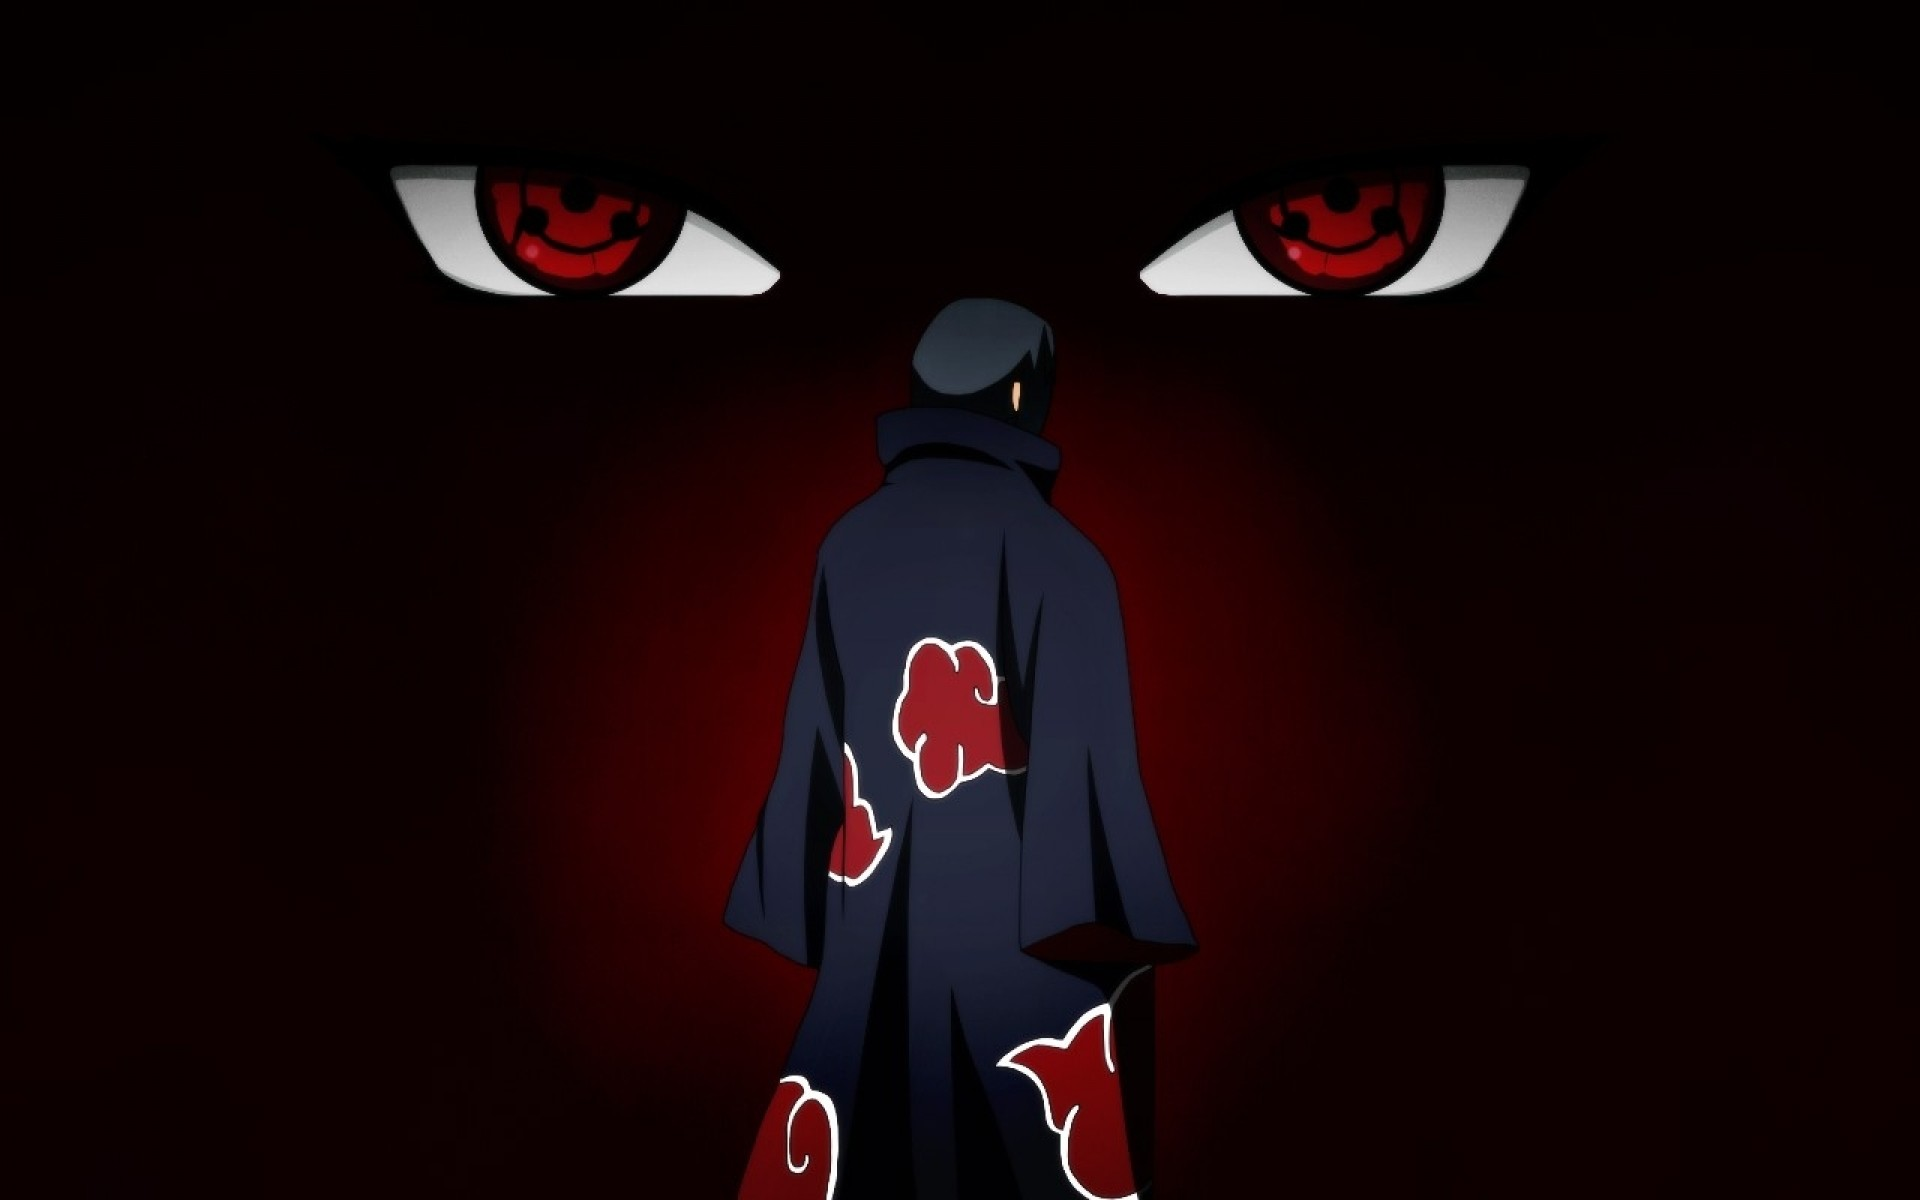 Itachi Uchiha Wallpaper HD 71 images